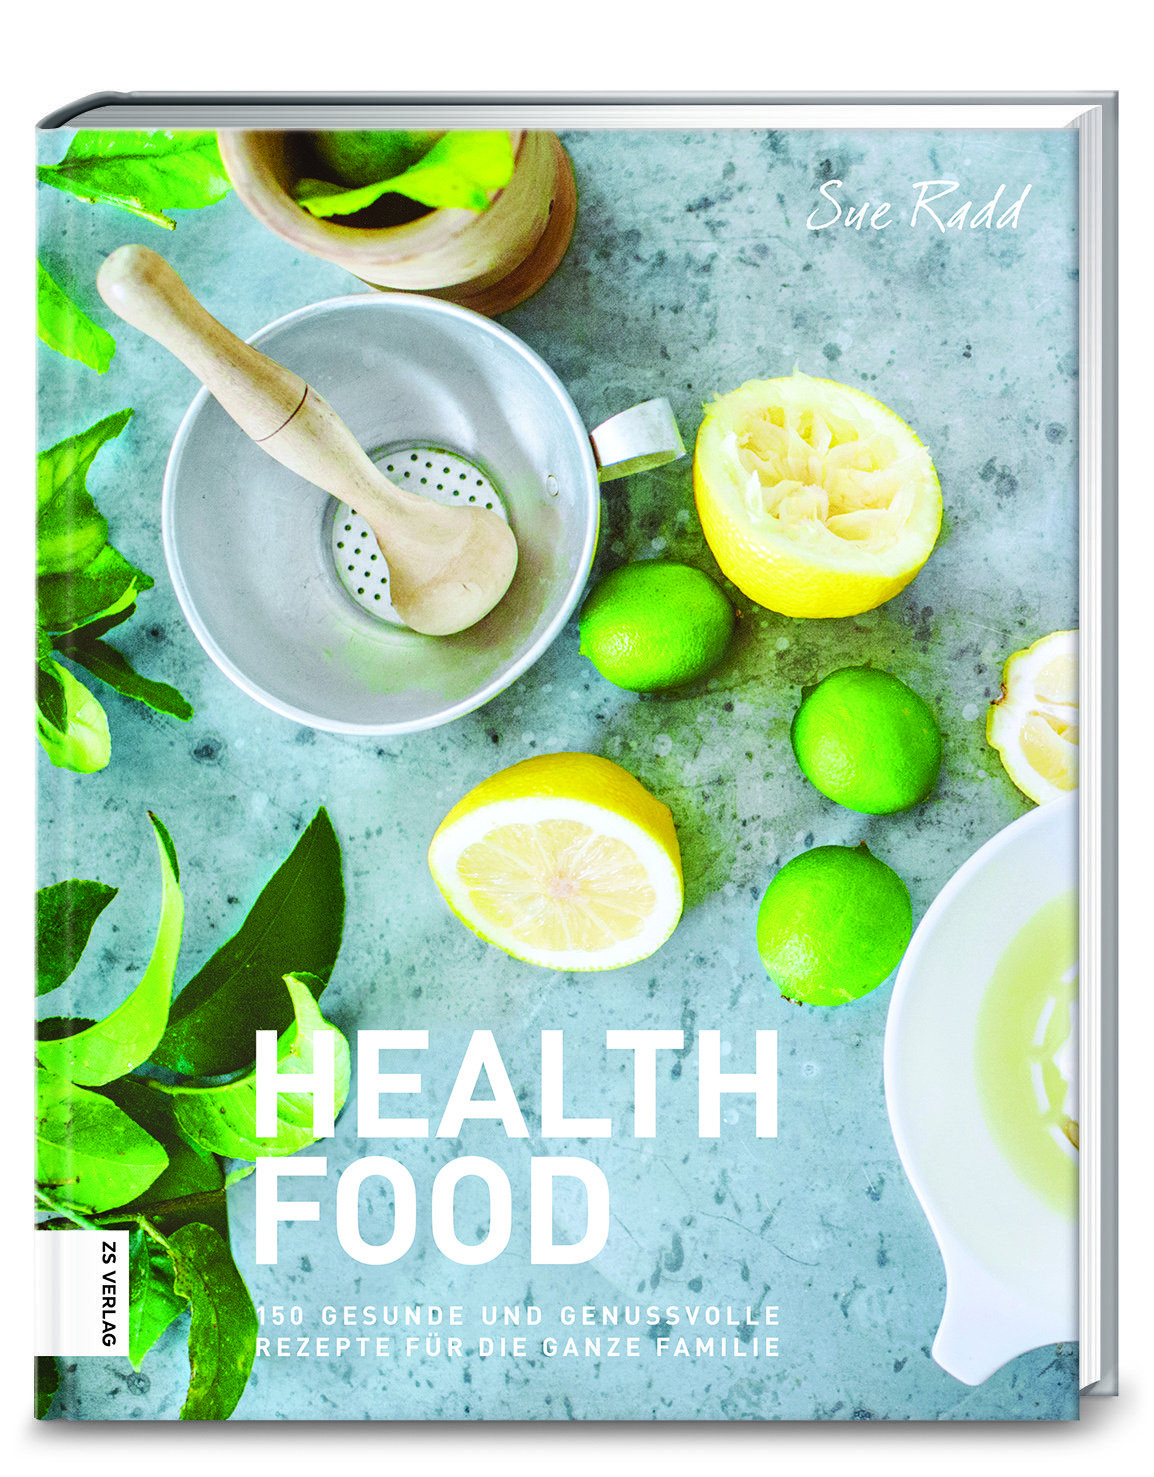 Health Food Buchcover 300dpi